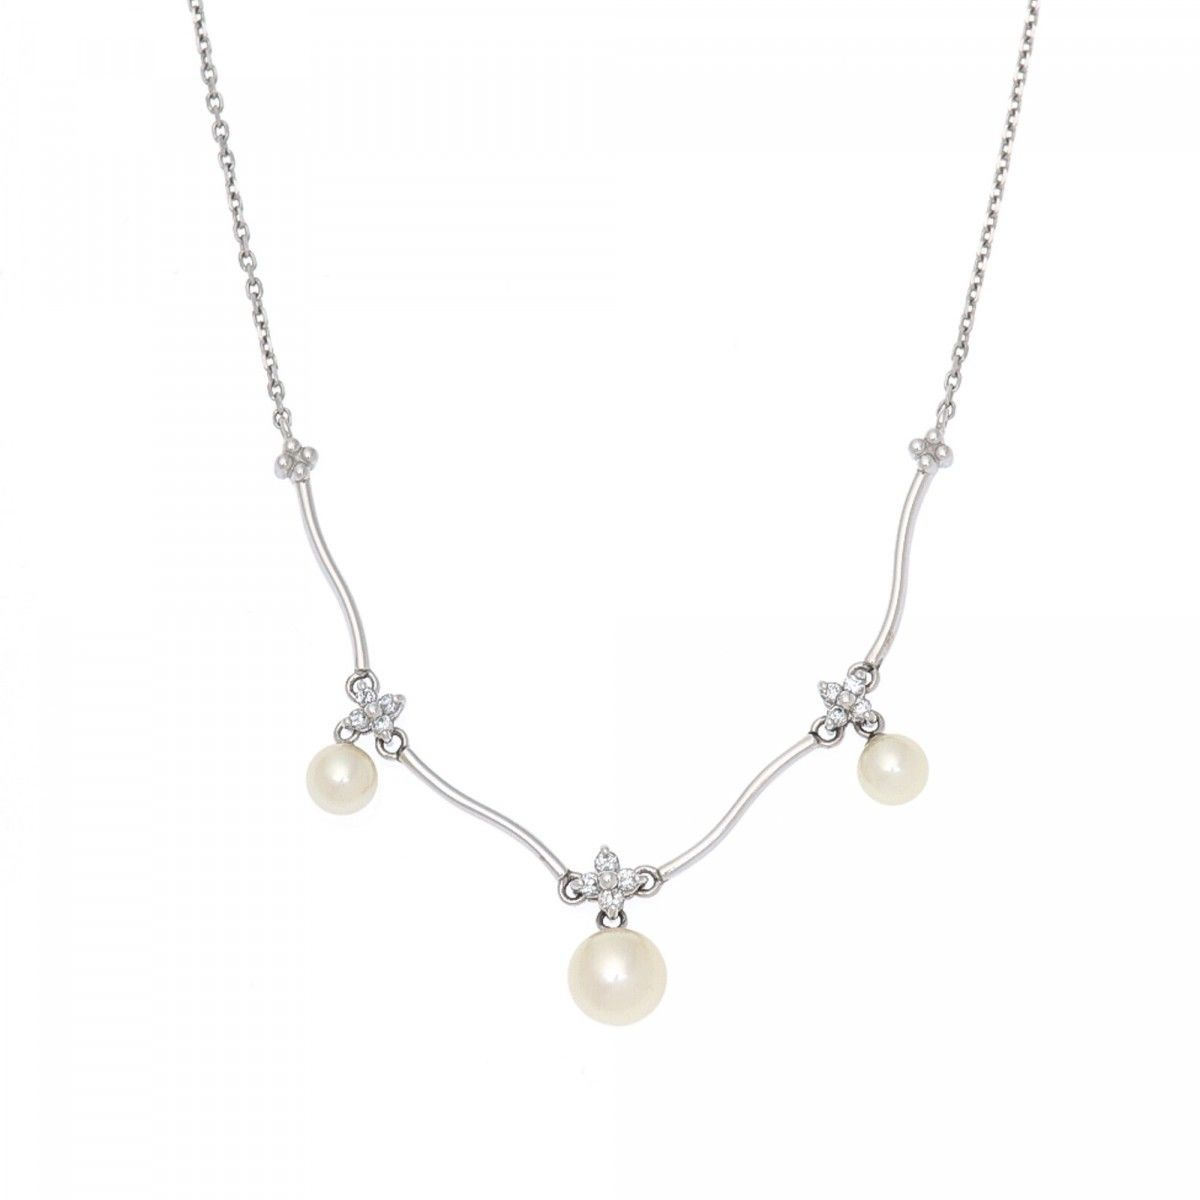 mizuki croghan products s diamond beauty pearl box jewel of necklace sea